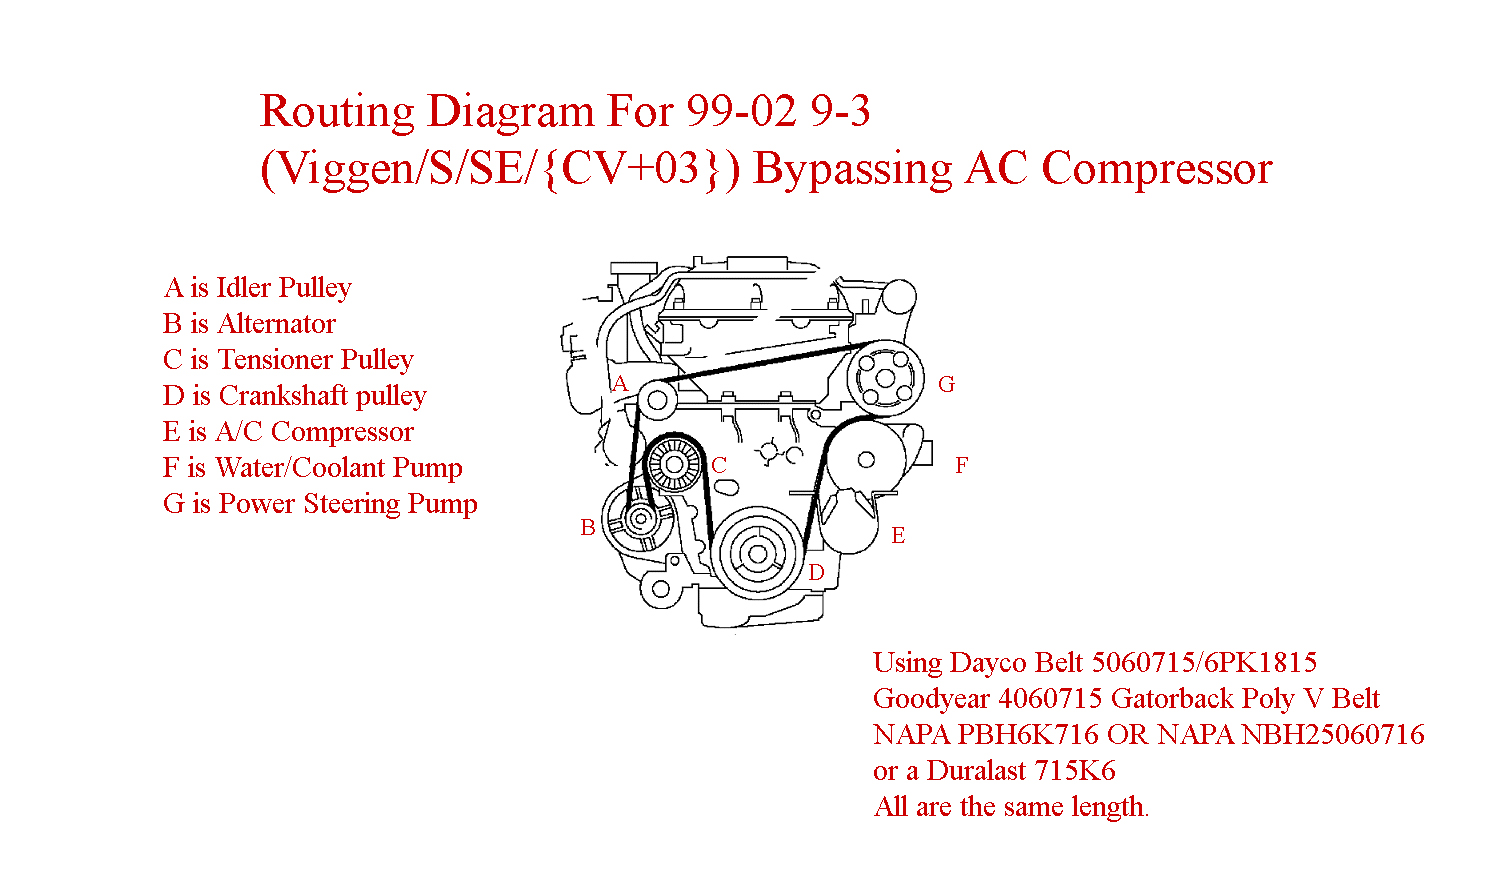 Wiring Diagram For 1990 Saab 900 Data Diagrams Engine Bay Free Image User 2003 9 3 Fuse